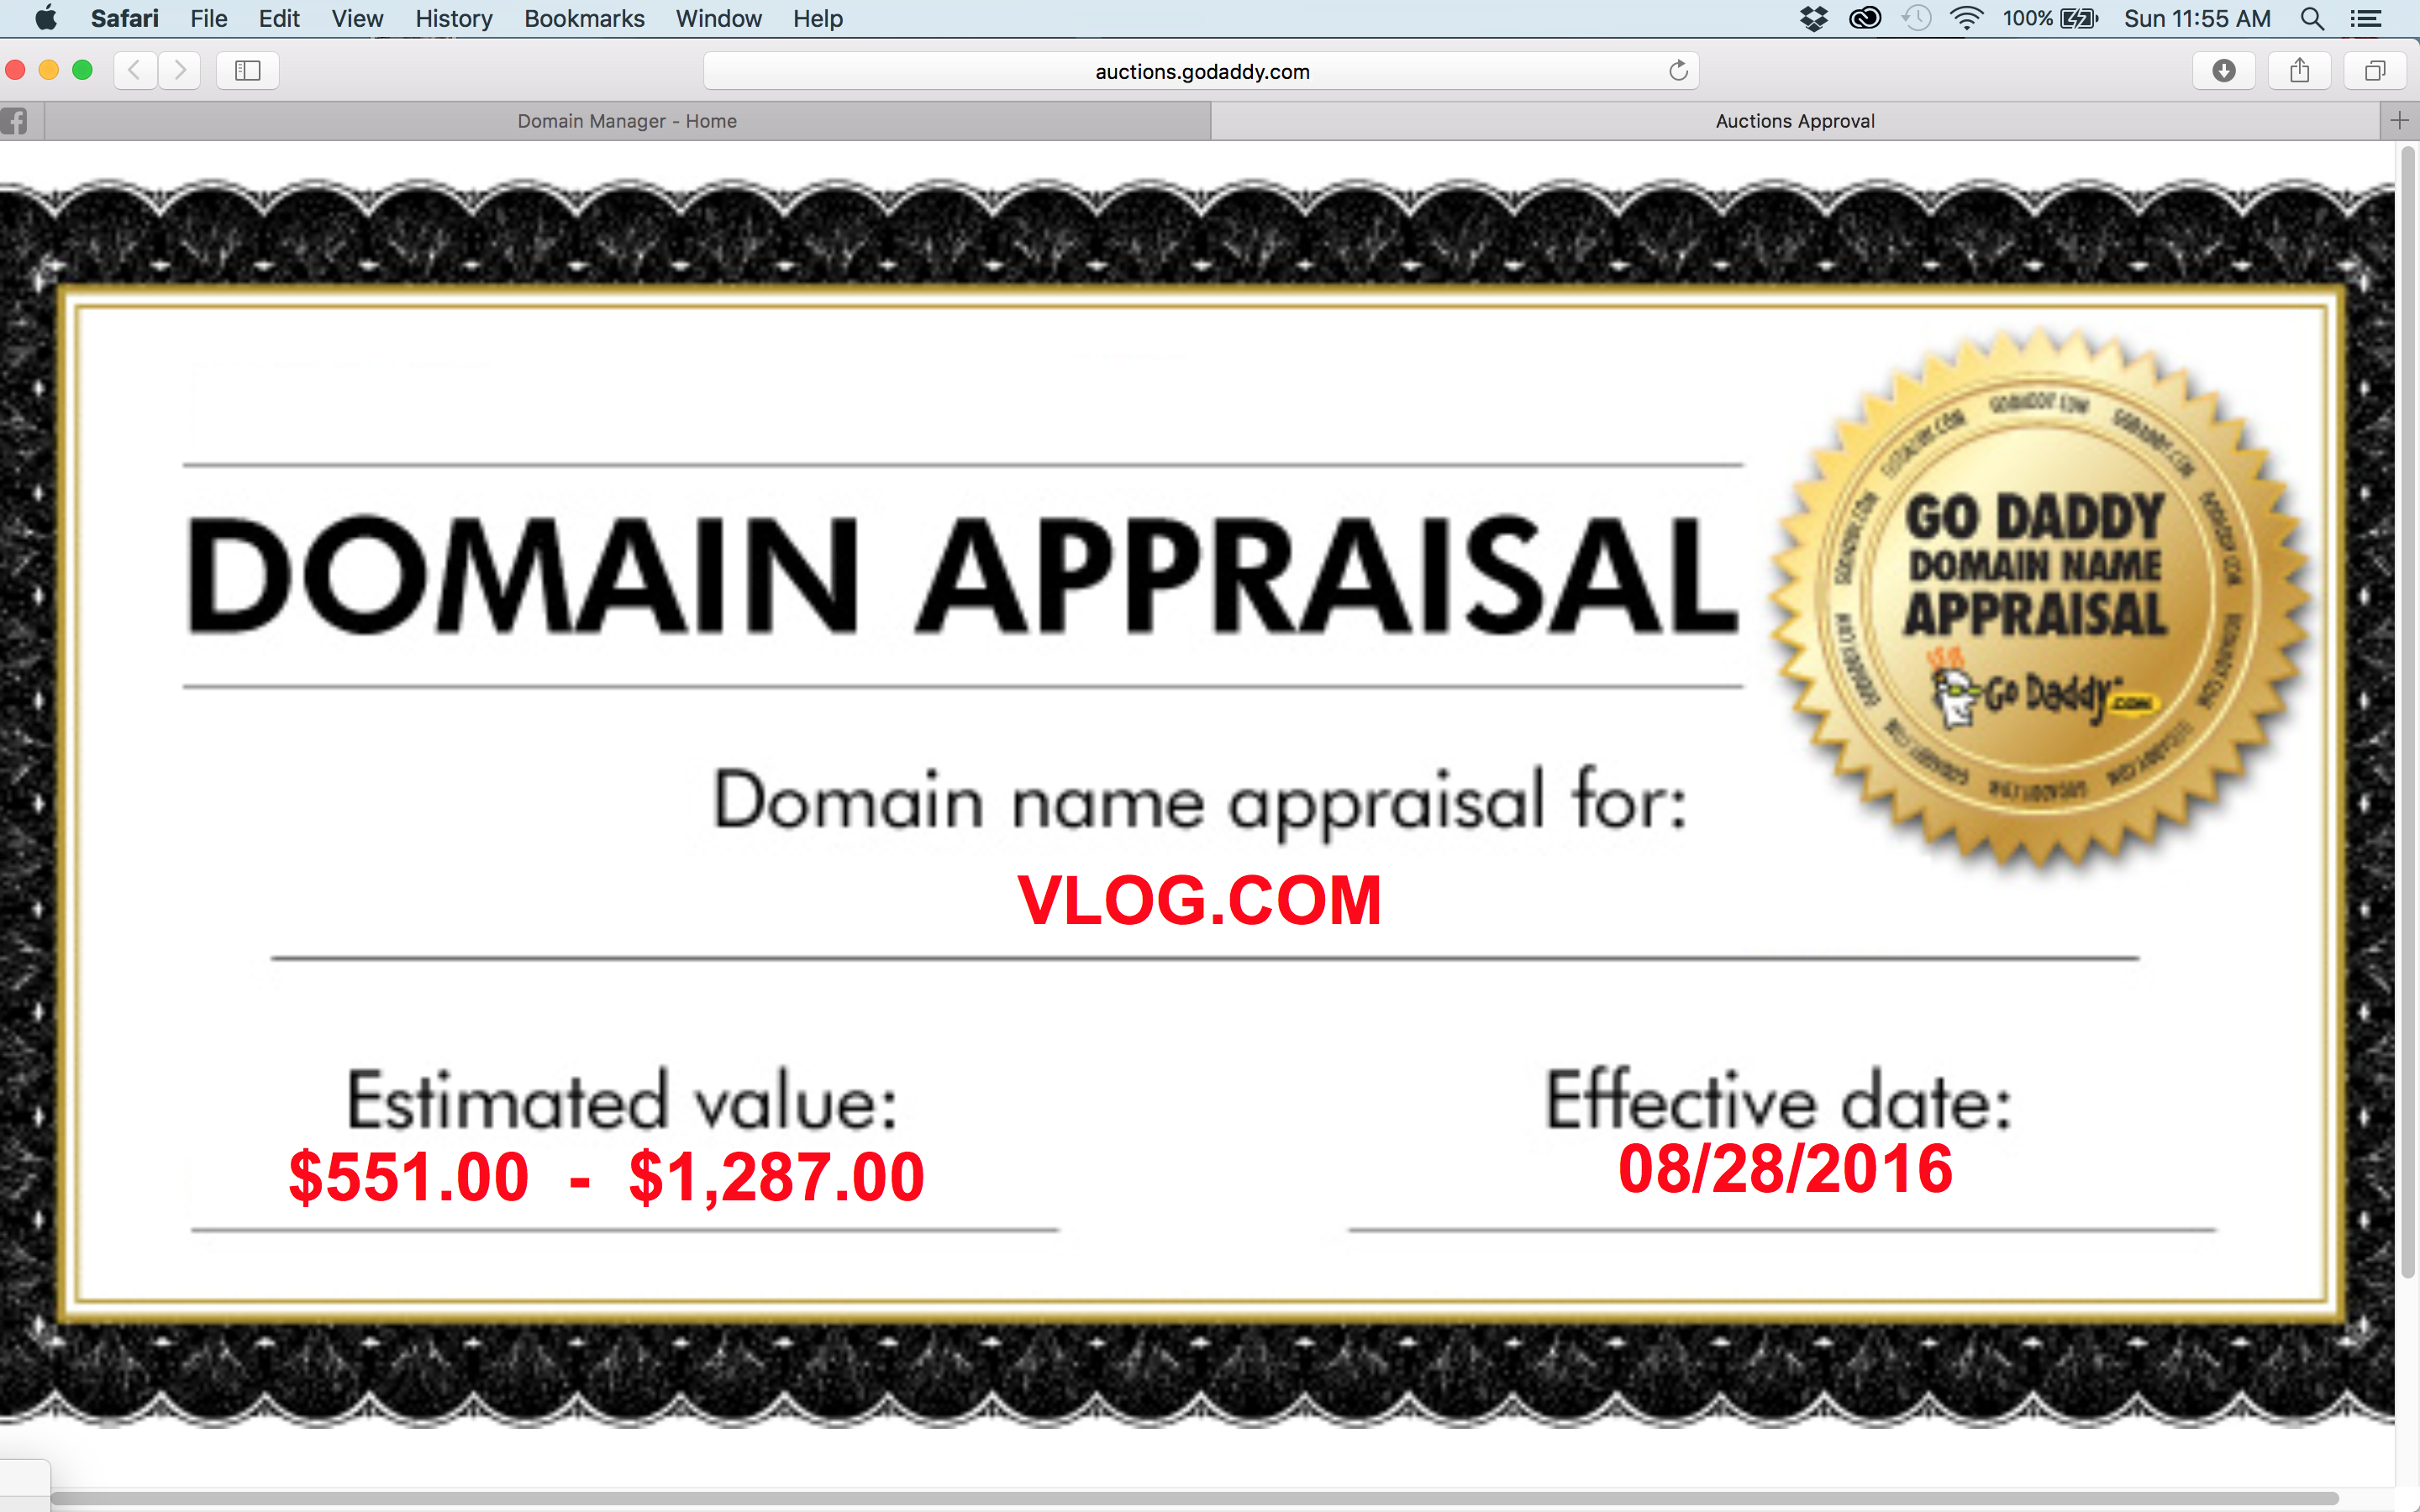 $50,000 VLOG COM contradictory appraisals: dream domain or